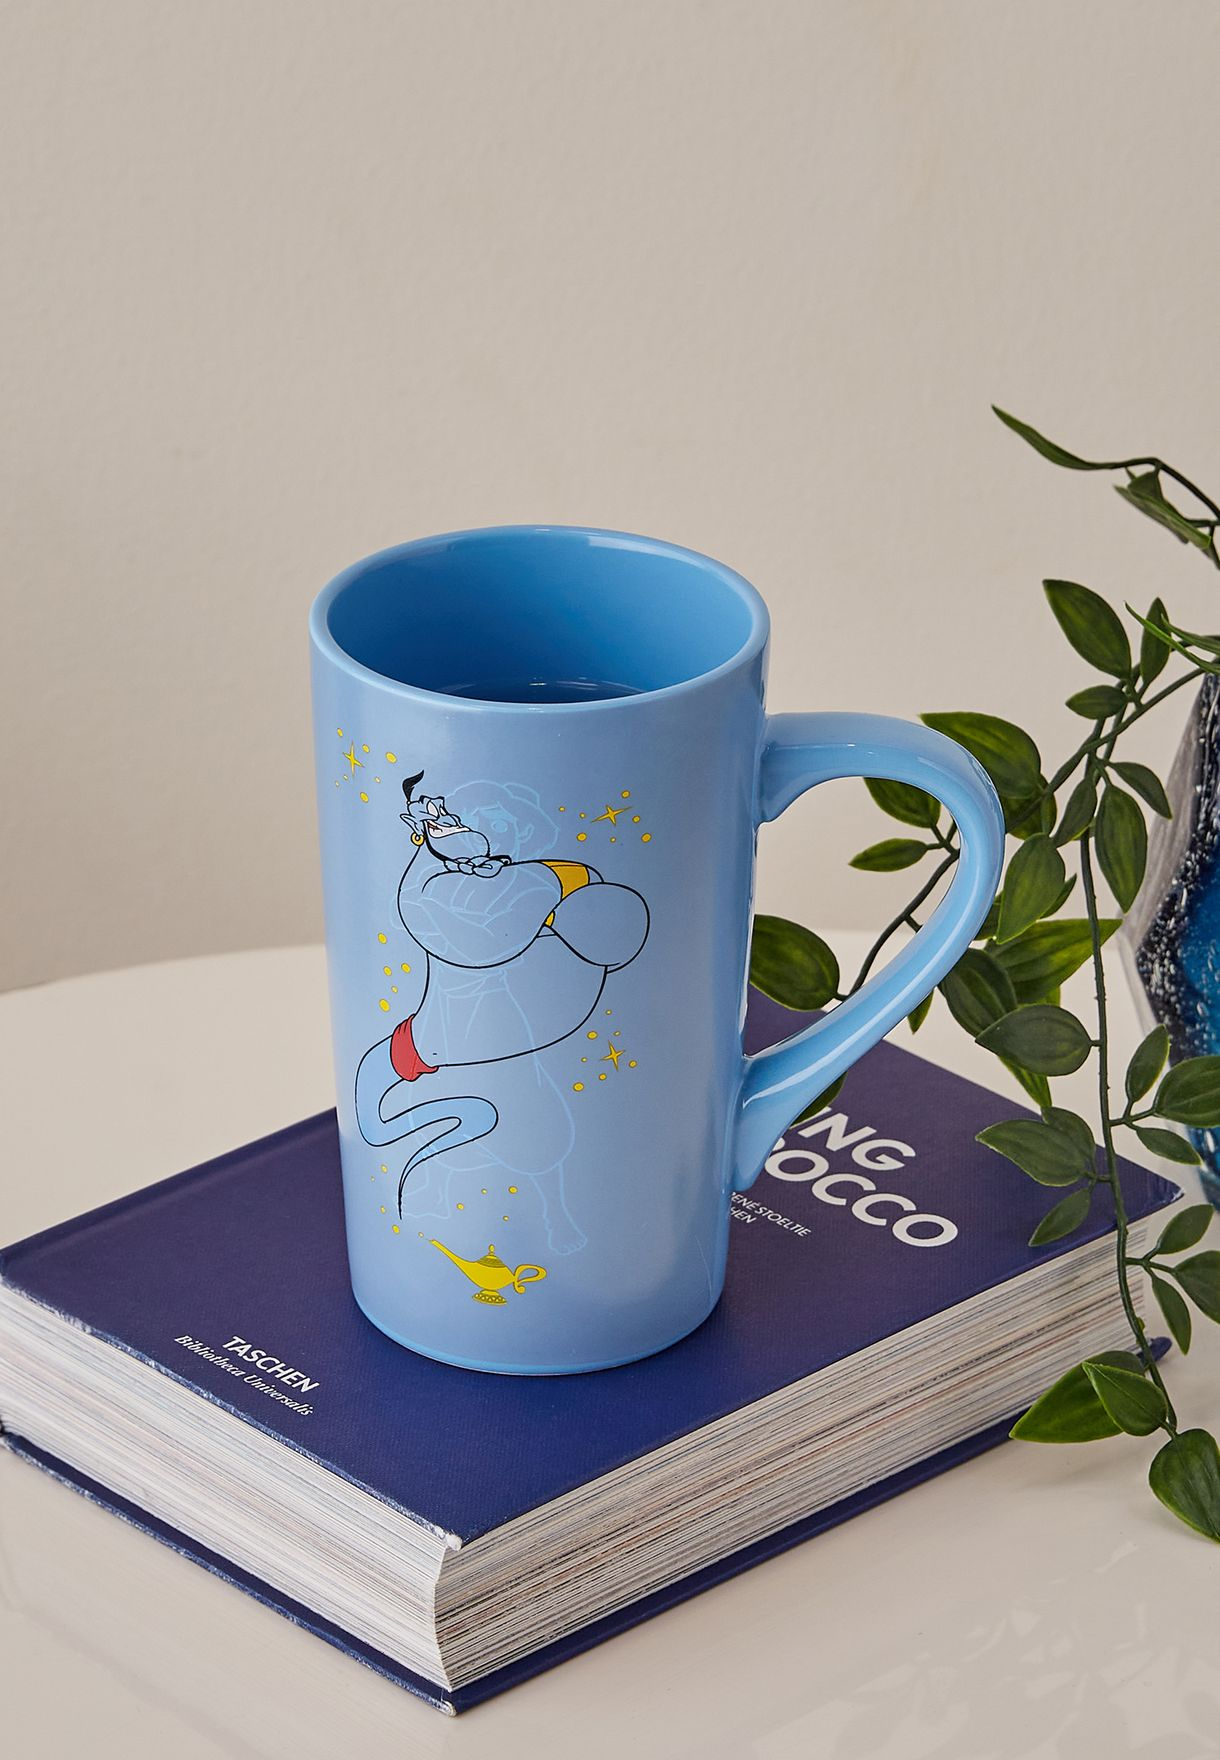 Disney Aladdin Heat change Mug